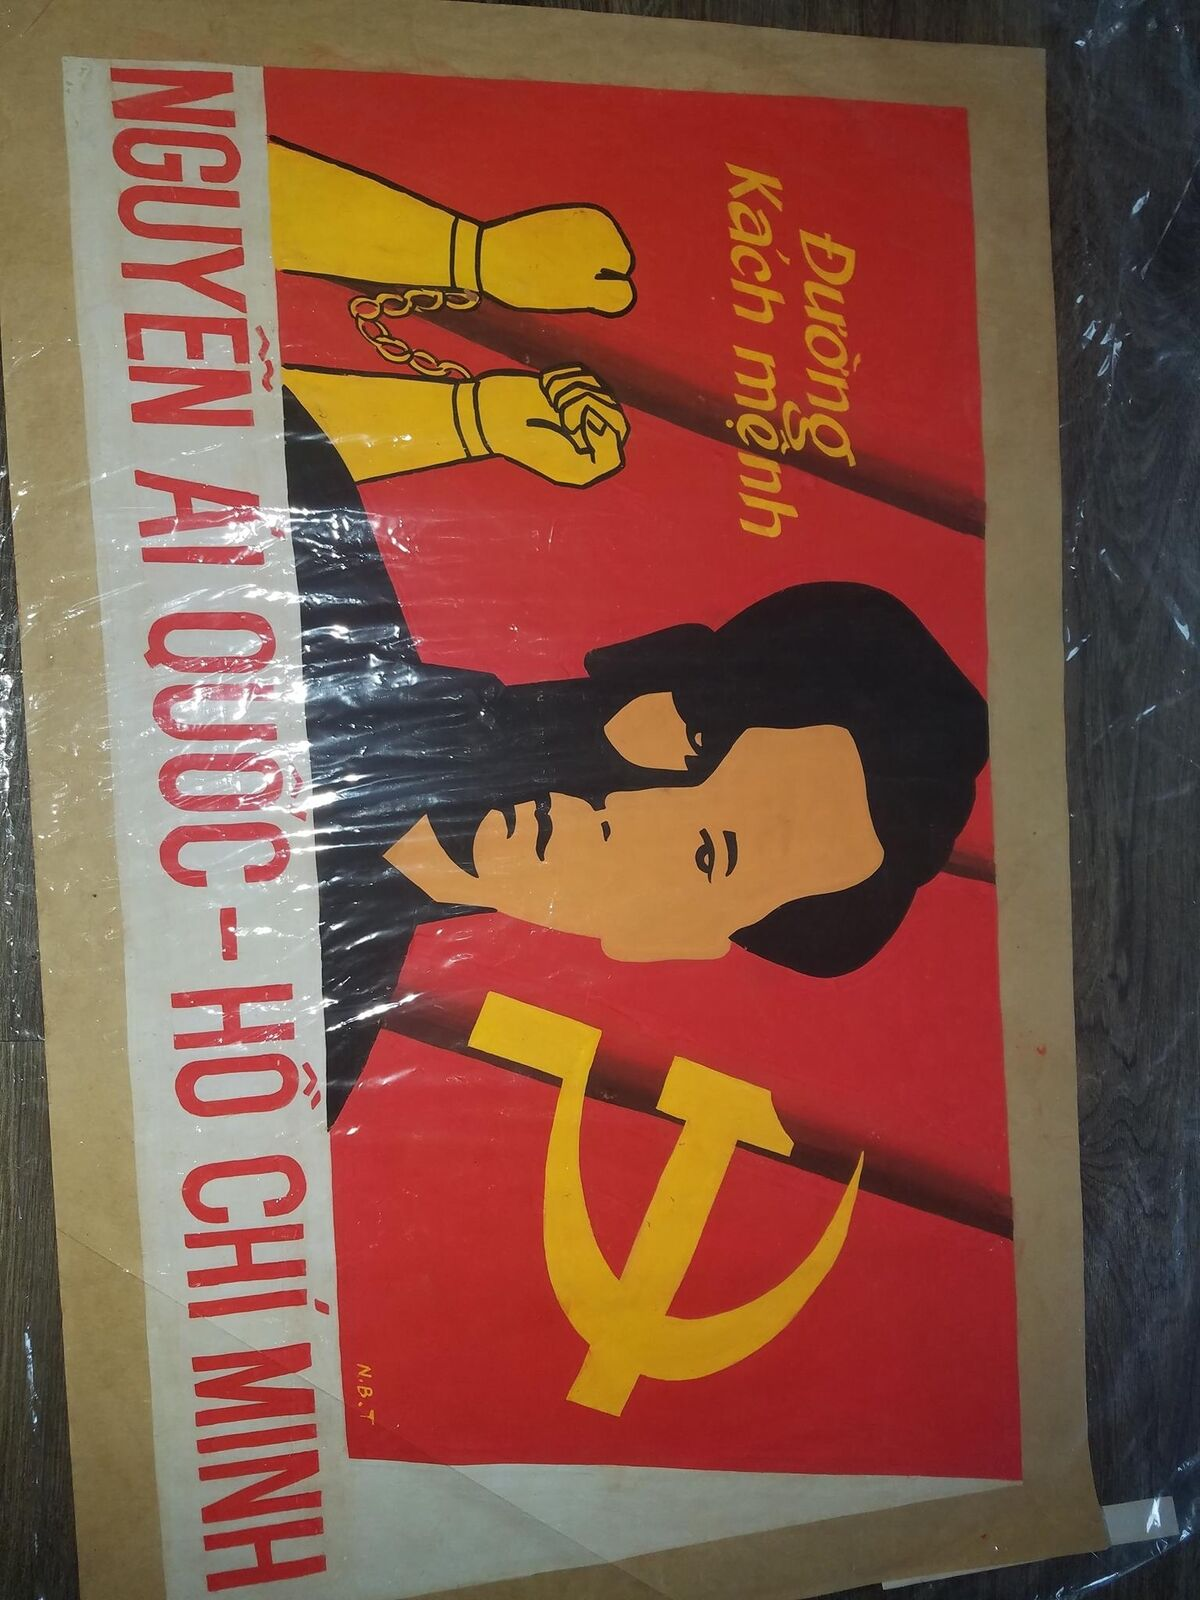 Vietnam Poster The Revolutionary Way Ho Chi Minh Year Unknown